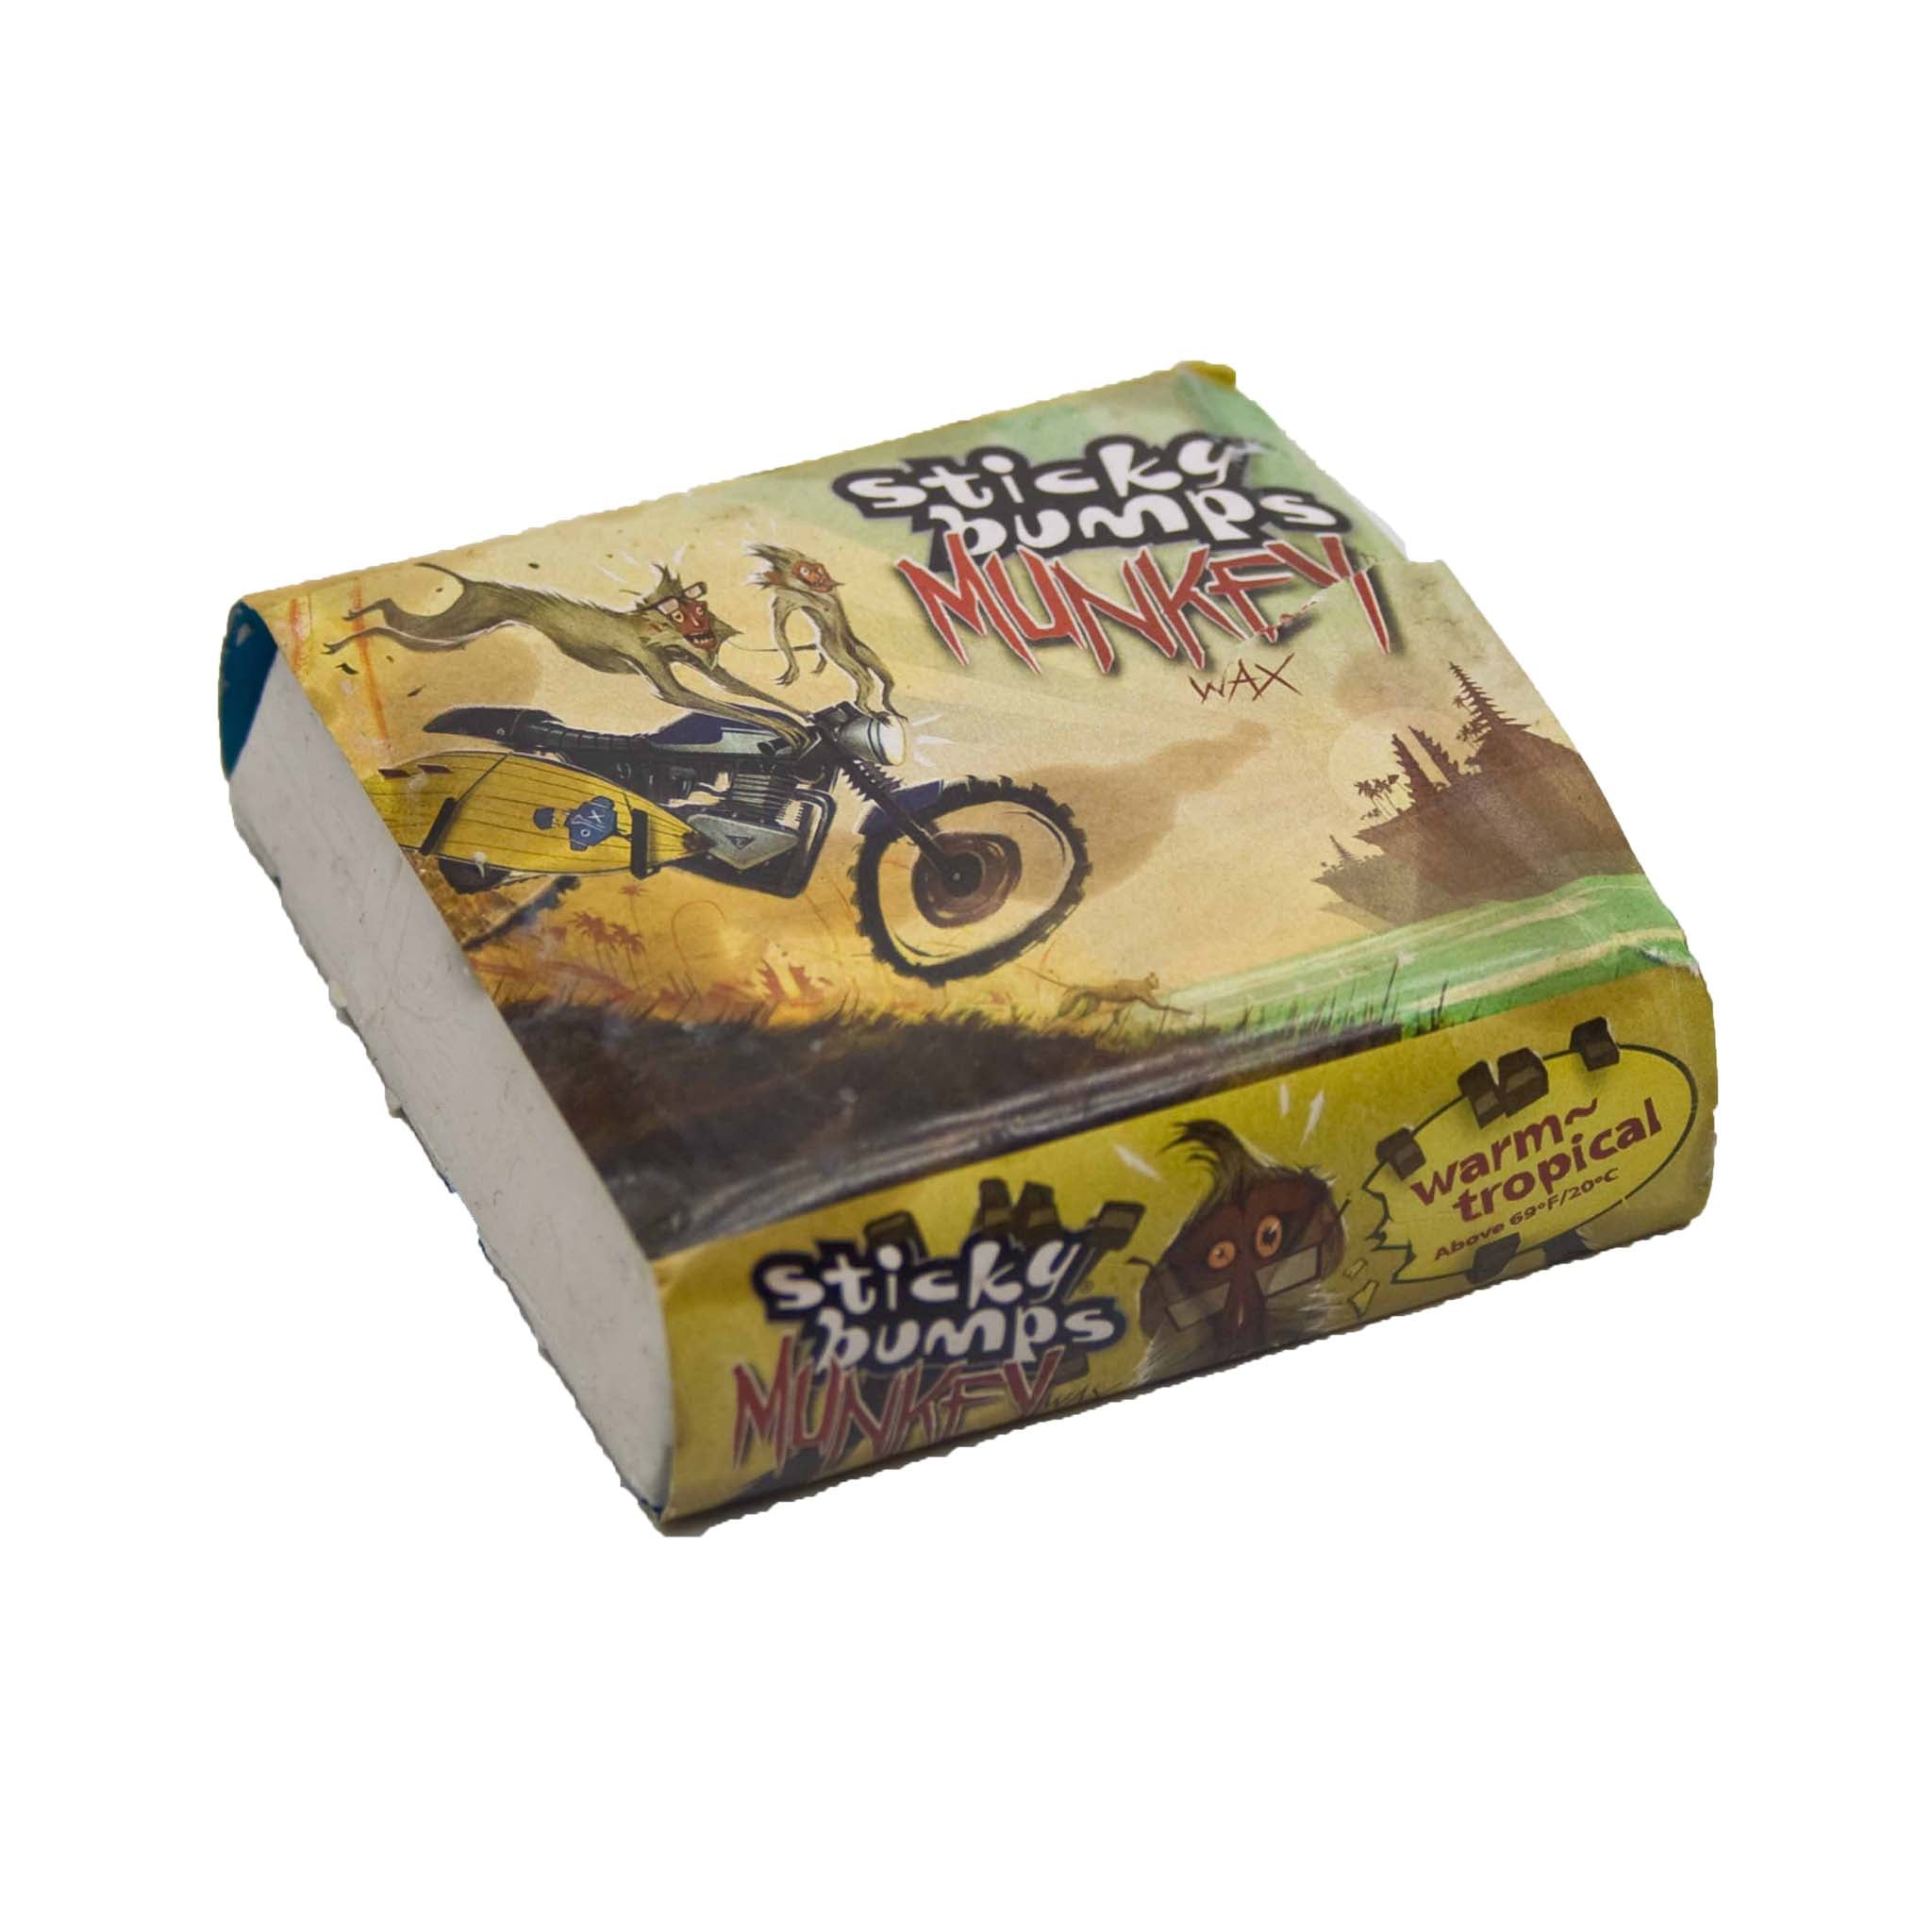 STICKY BUMPS MUNKEY WAX - WARM TROPICAL